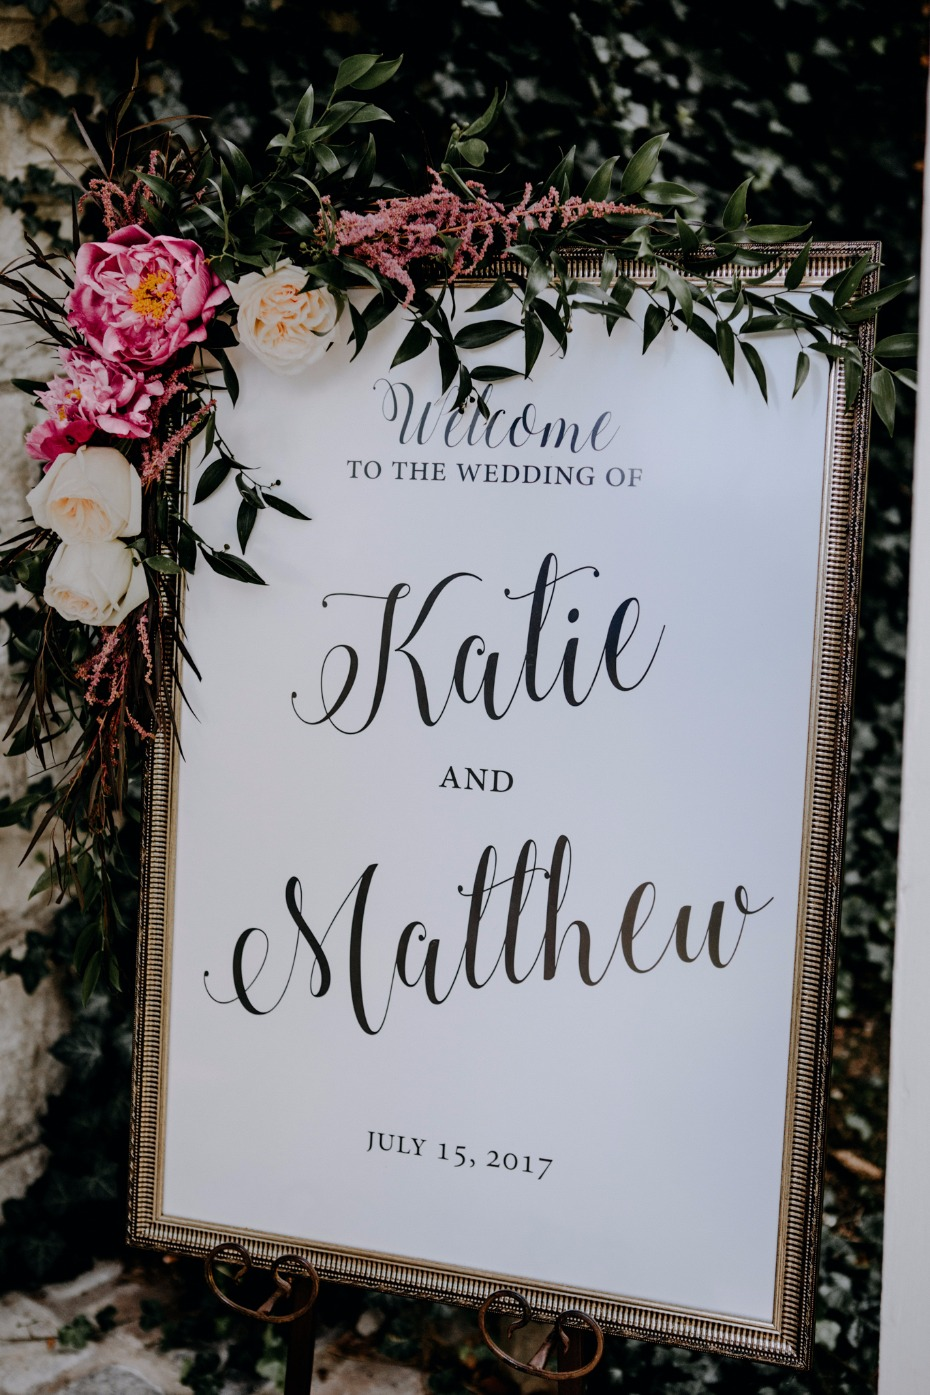 Chic welcome wedding sign